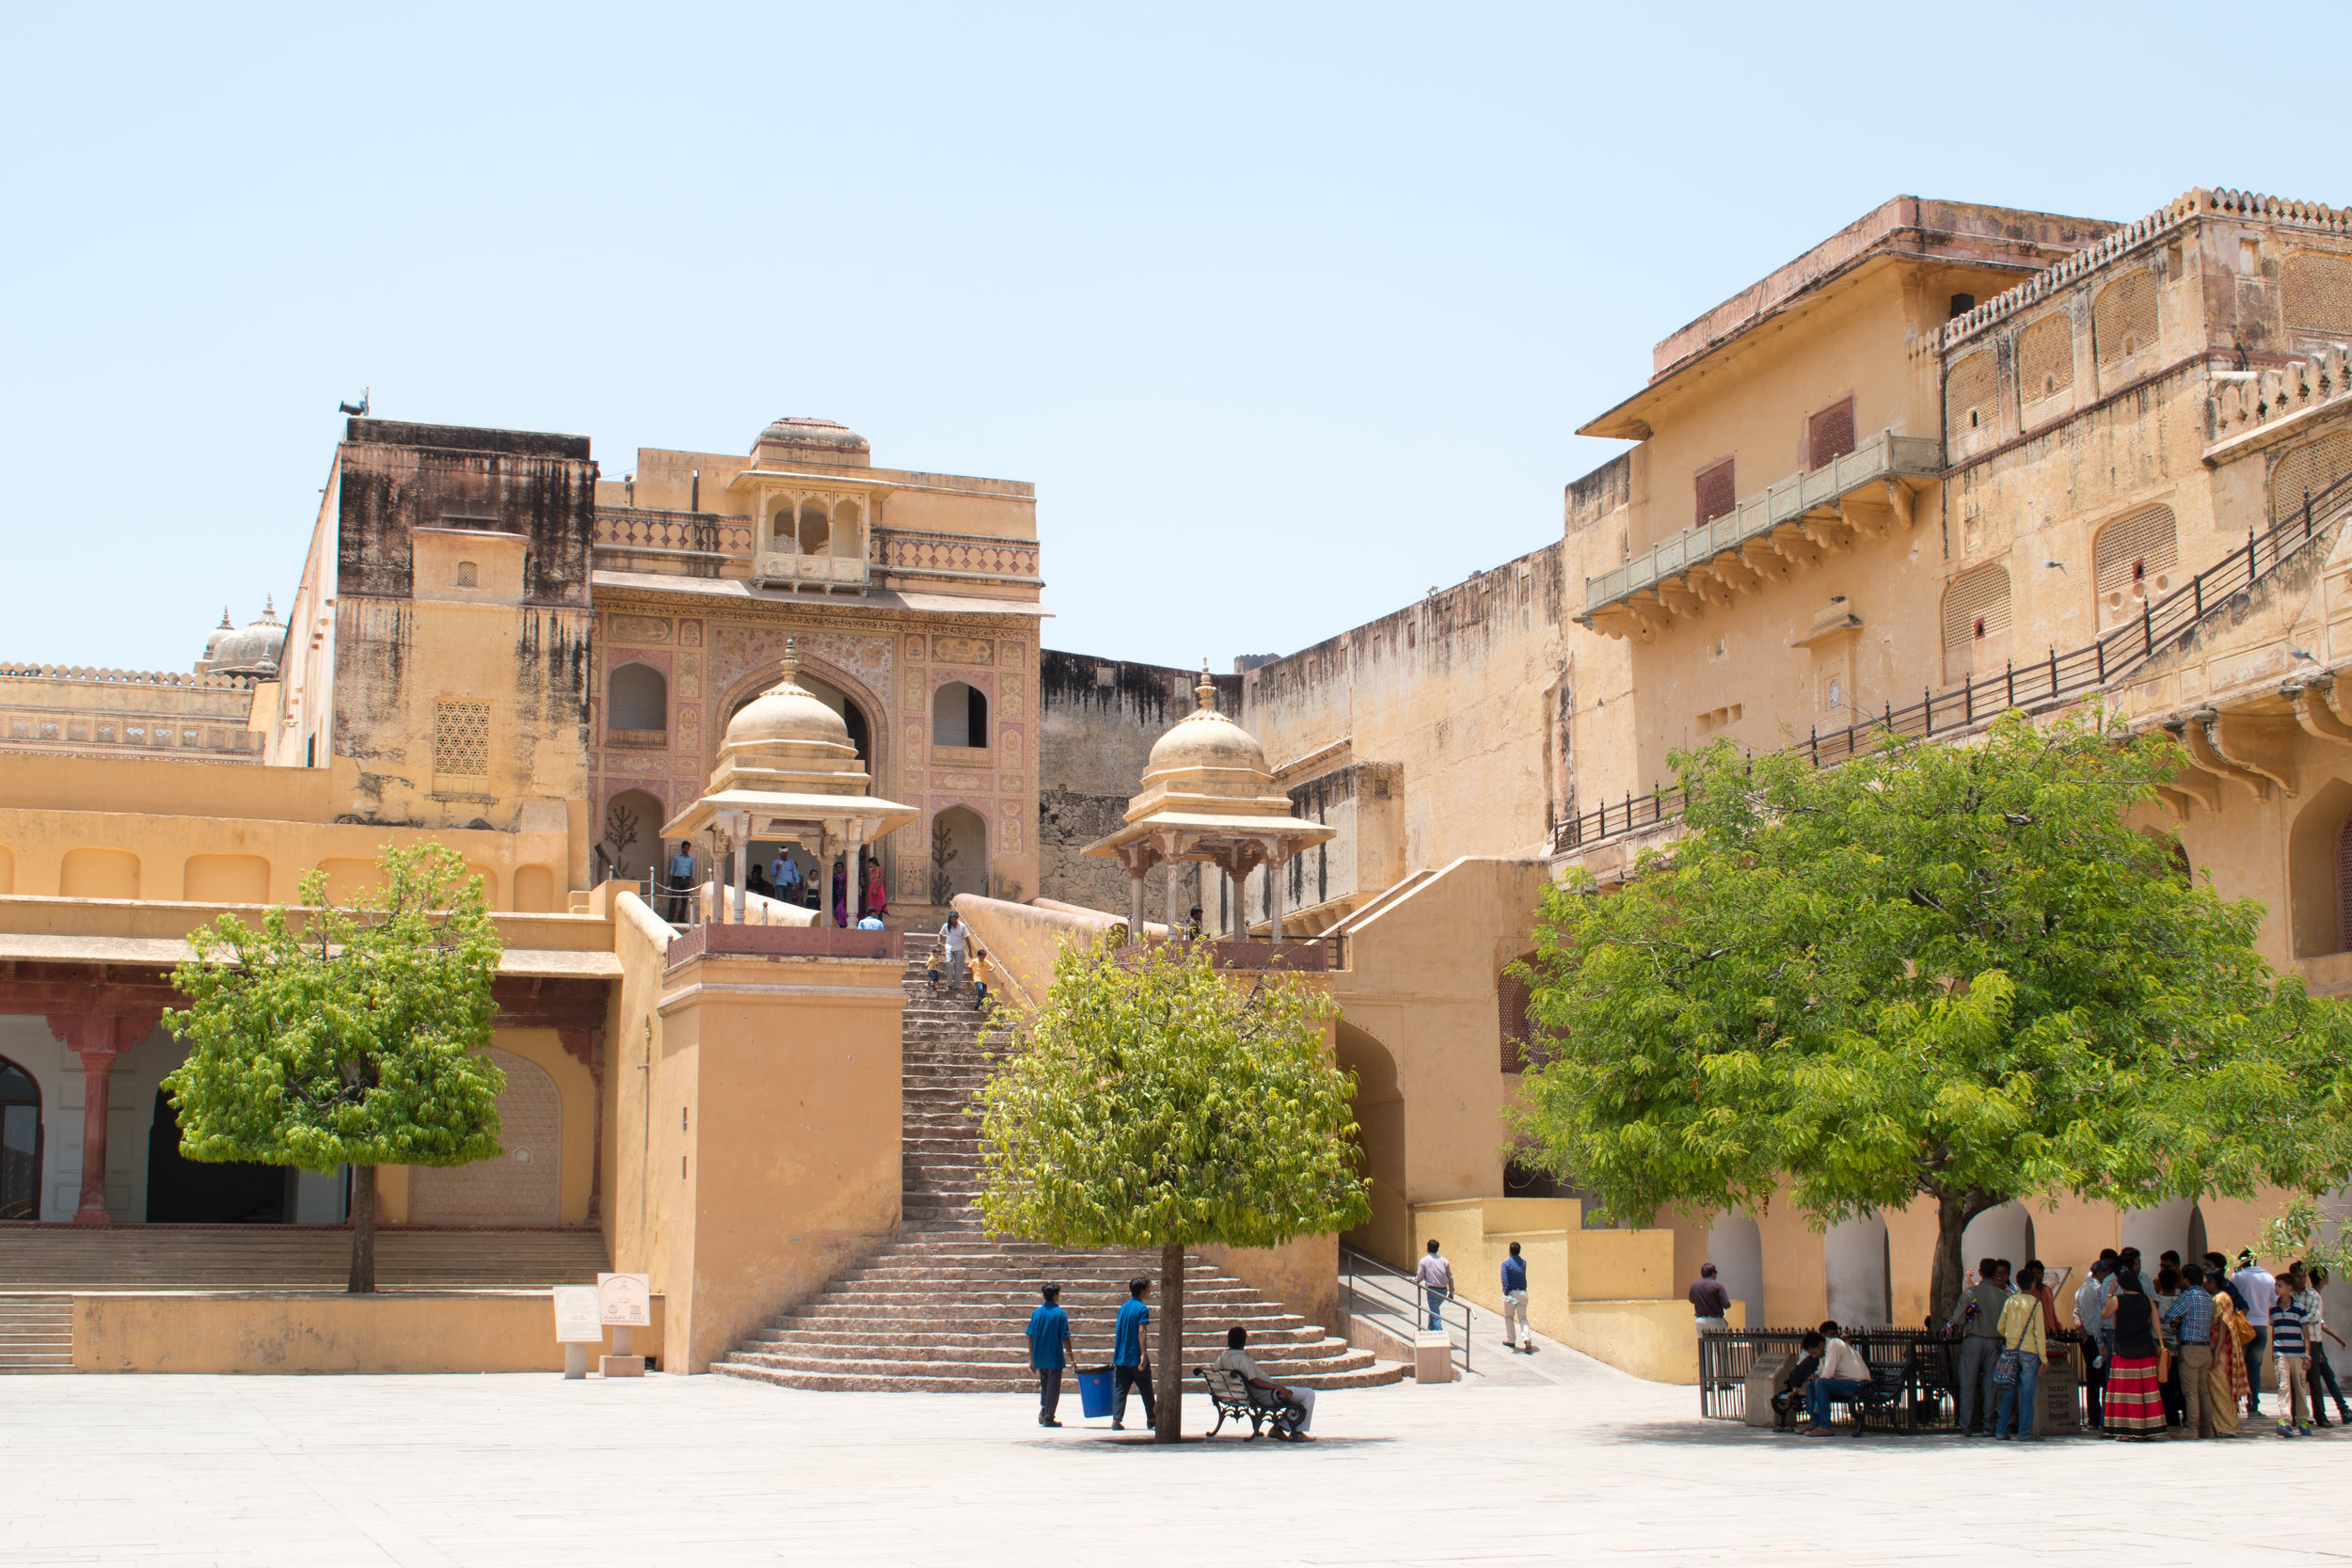 The Leafy Courtyard in Amber Fort, Jaipur in India